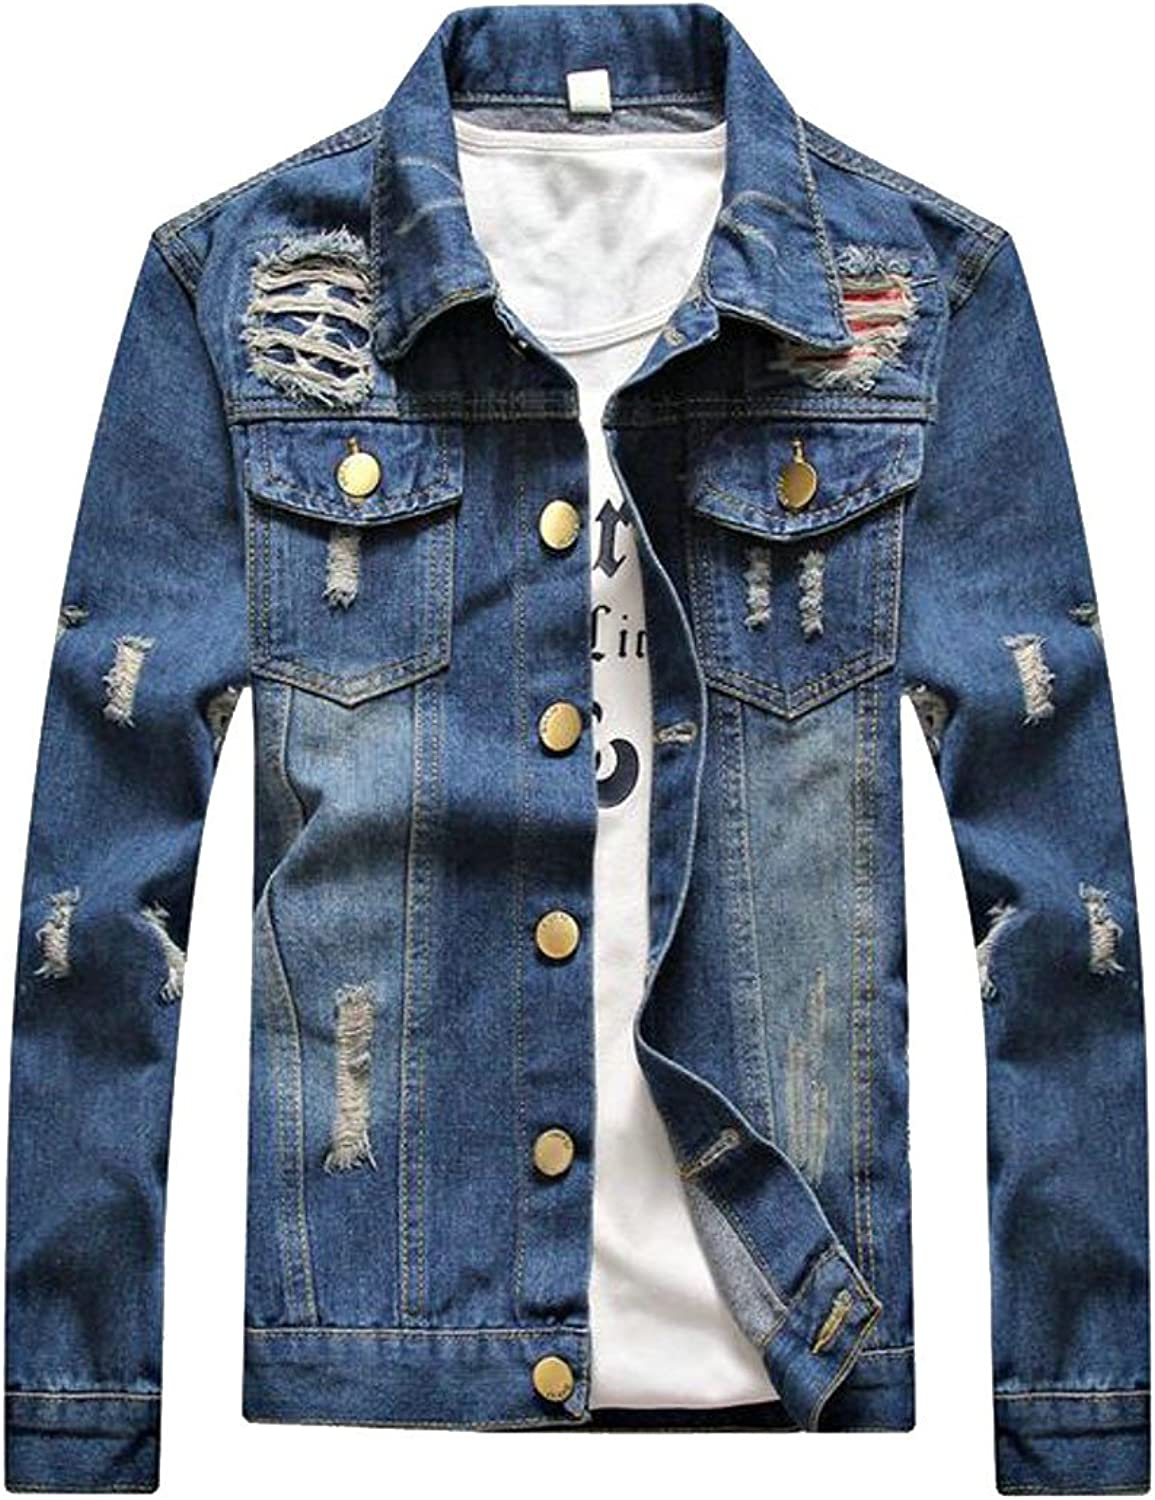 Lutratocro Mens Classic Fit Outwear Distressed Coat Western Western